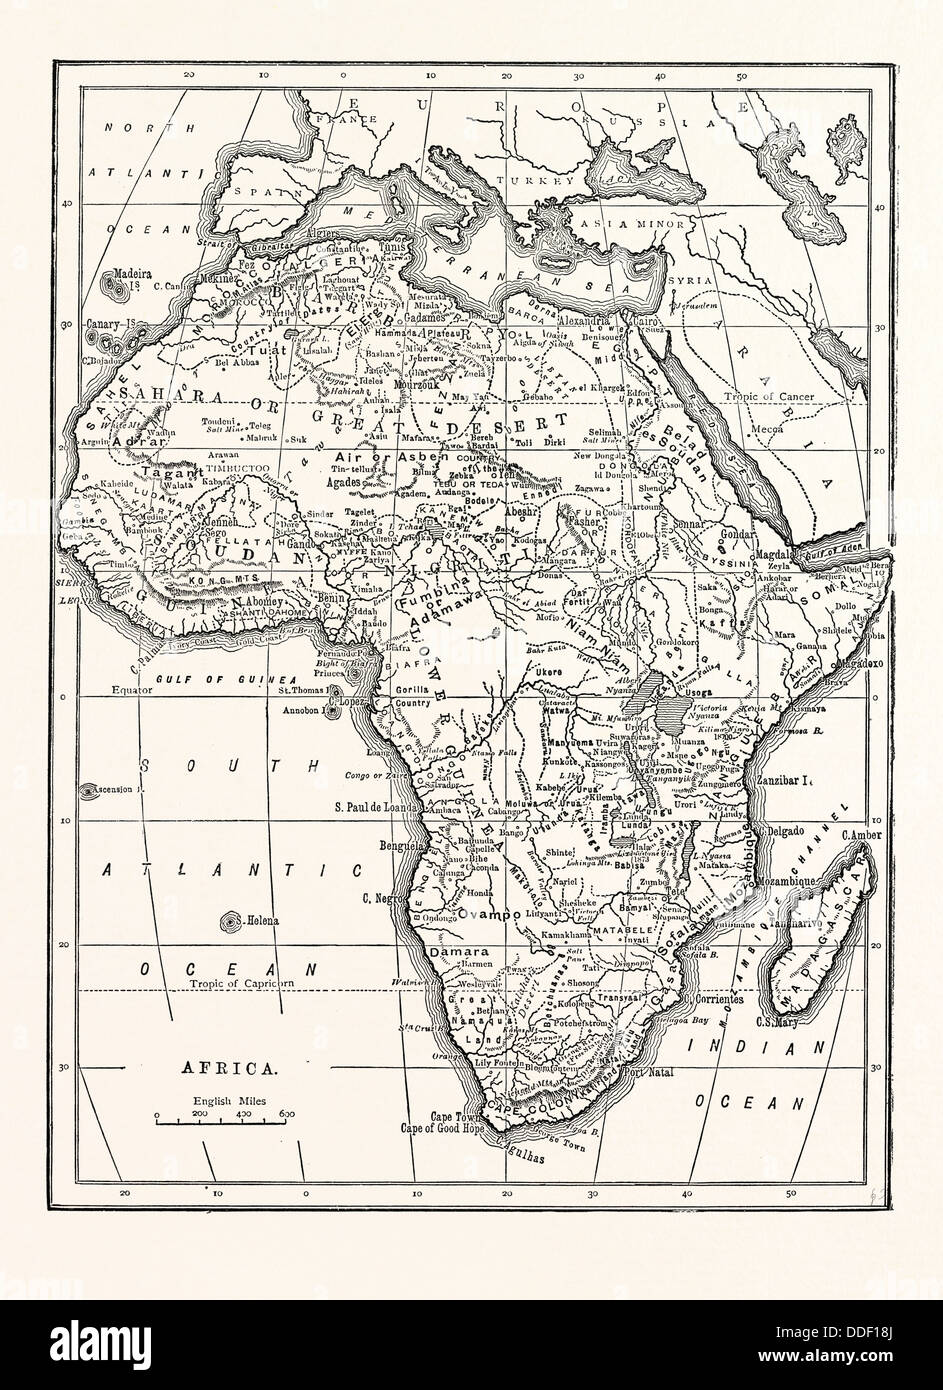 Map Of Africa Stock Photos & Map Of Africa Stock Images - Alamy Blank Map Of Afra on map of abia, map of africa, map of haiti,